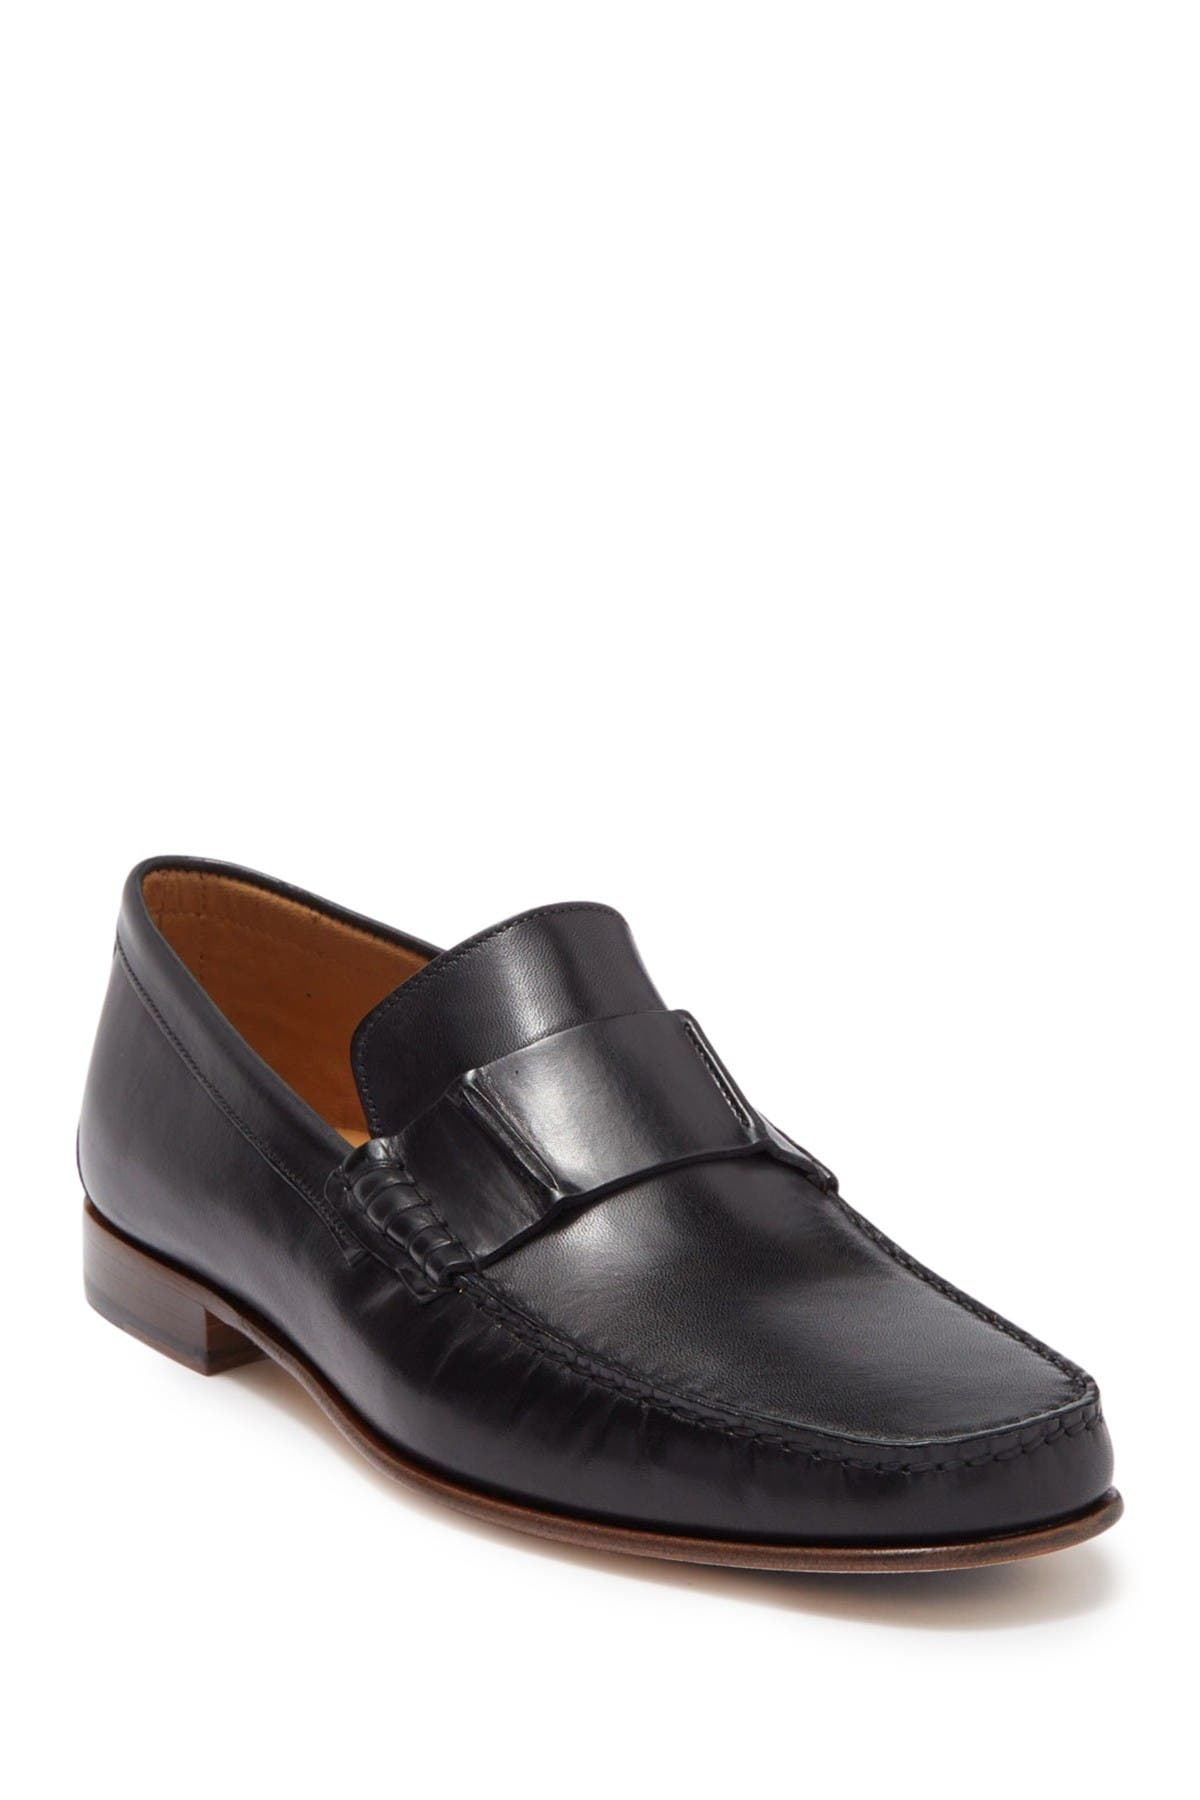 Image of Donald Pliner Dillan Tanned Leather Loafer